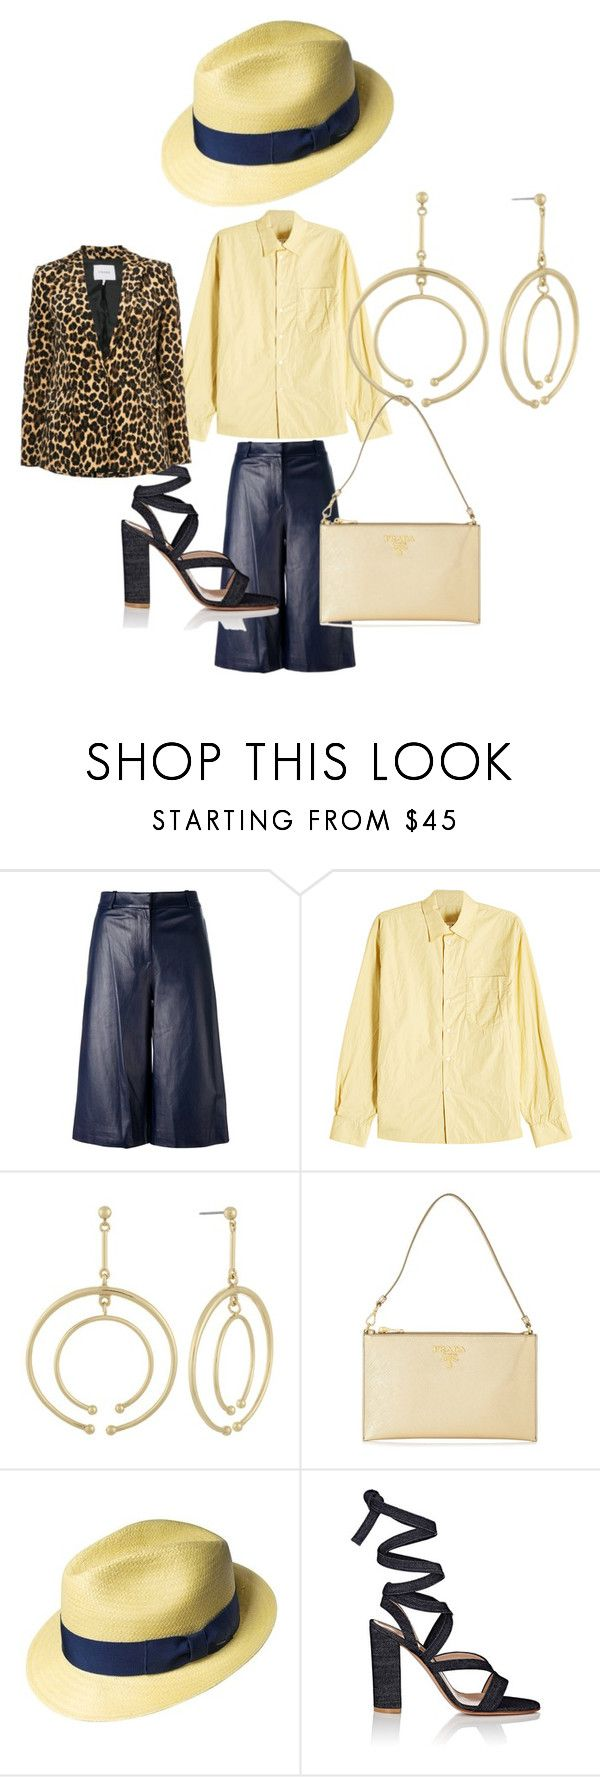 """Shorts Suits 2018, 1c!"" by alvandcompany ❤ liked on Polyvore featuring Diane Von Furstenberg, Marni, Laundry by Shelli Segal, Prada, Bailey of Hollywood, Gianvito Rossi, Frame, MadetoMatch and ShortSuits2018"